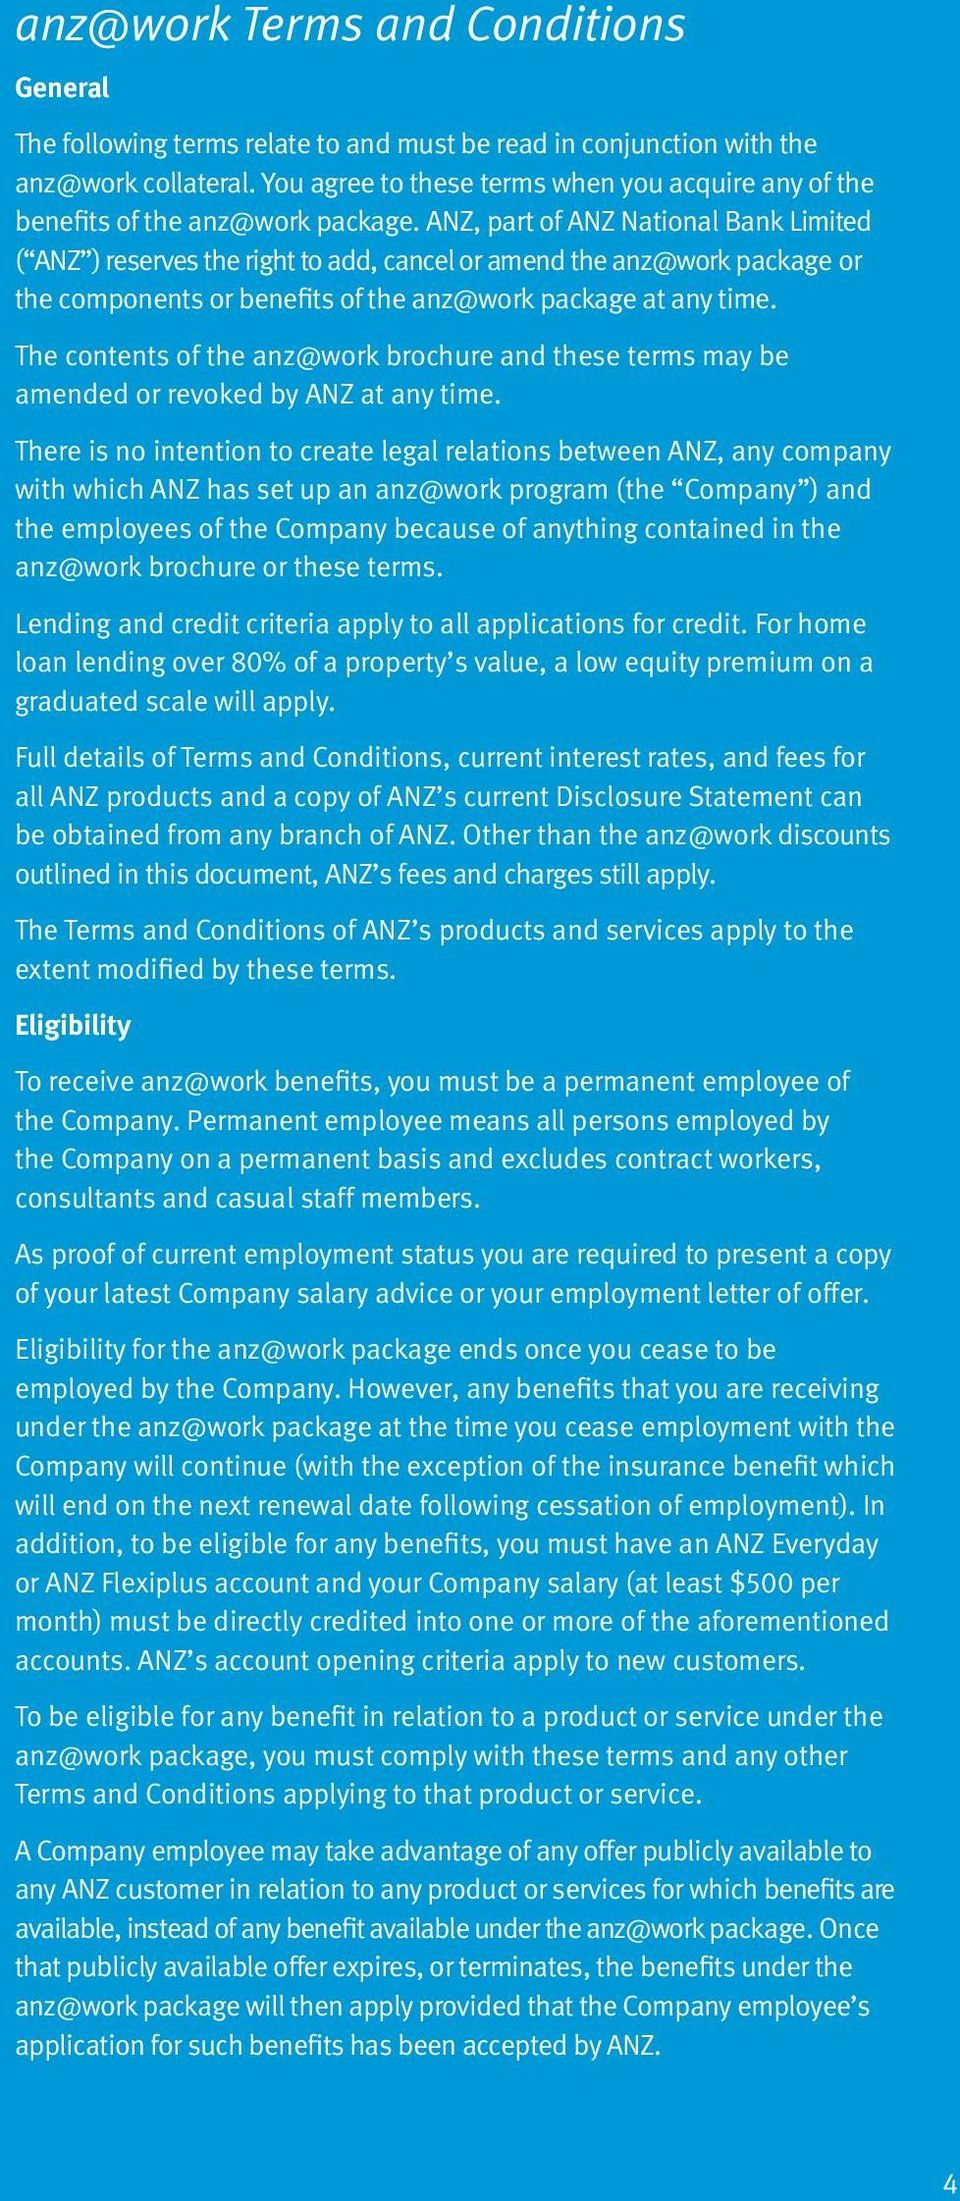 ANZ, part of ANZ National Bank Limited ( ANZ ) reserves the right to add, cancel or amend the anz@work package or the components or benefits of the anz@work package at any time.